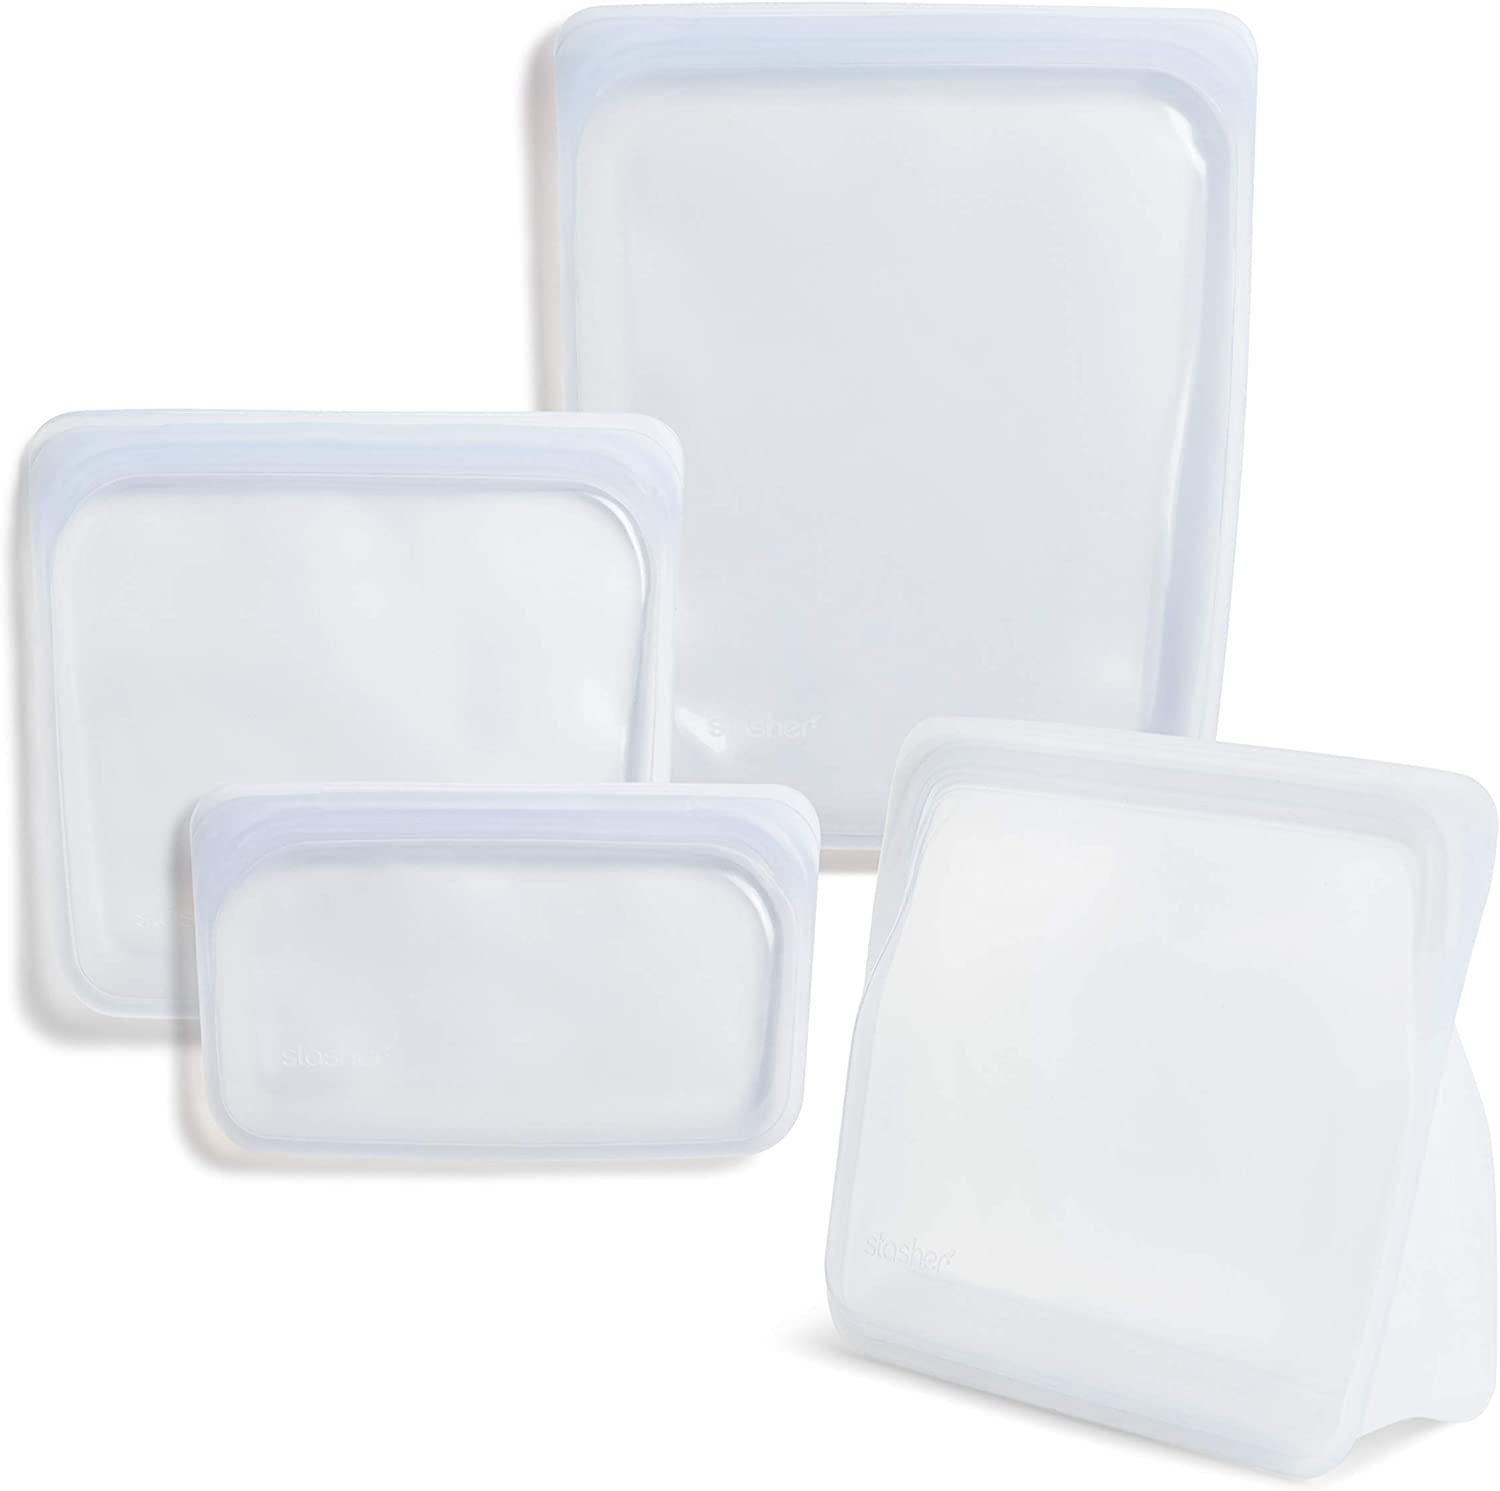 Stasher 100% Silicone Food Grade Reusable Storage Bag, Clear (Bundle 4-Pack Large) | Reduce Single-Use Plastic | Store or Freeze | Leakproof, Dishwasher-Safe, Eco-friendly, Non-Toxic